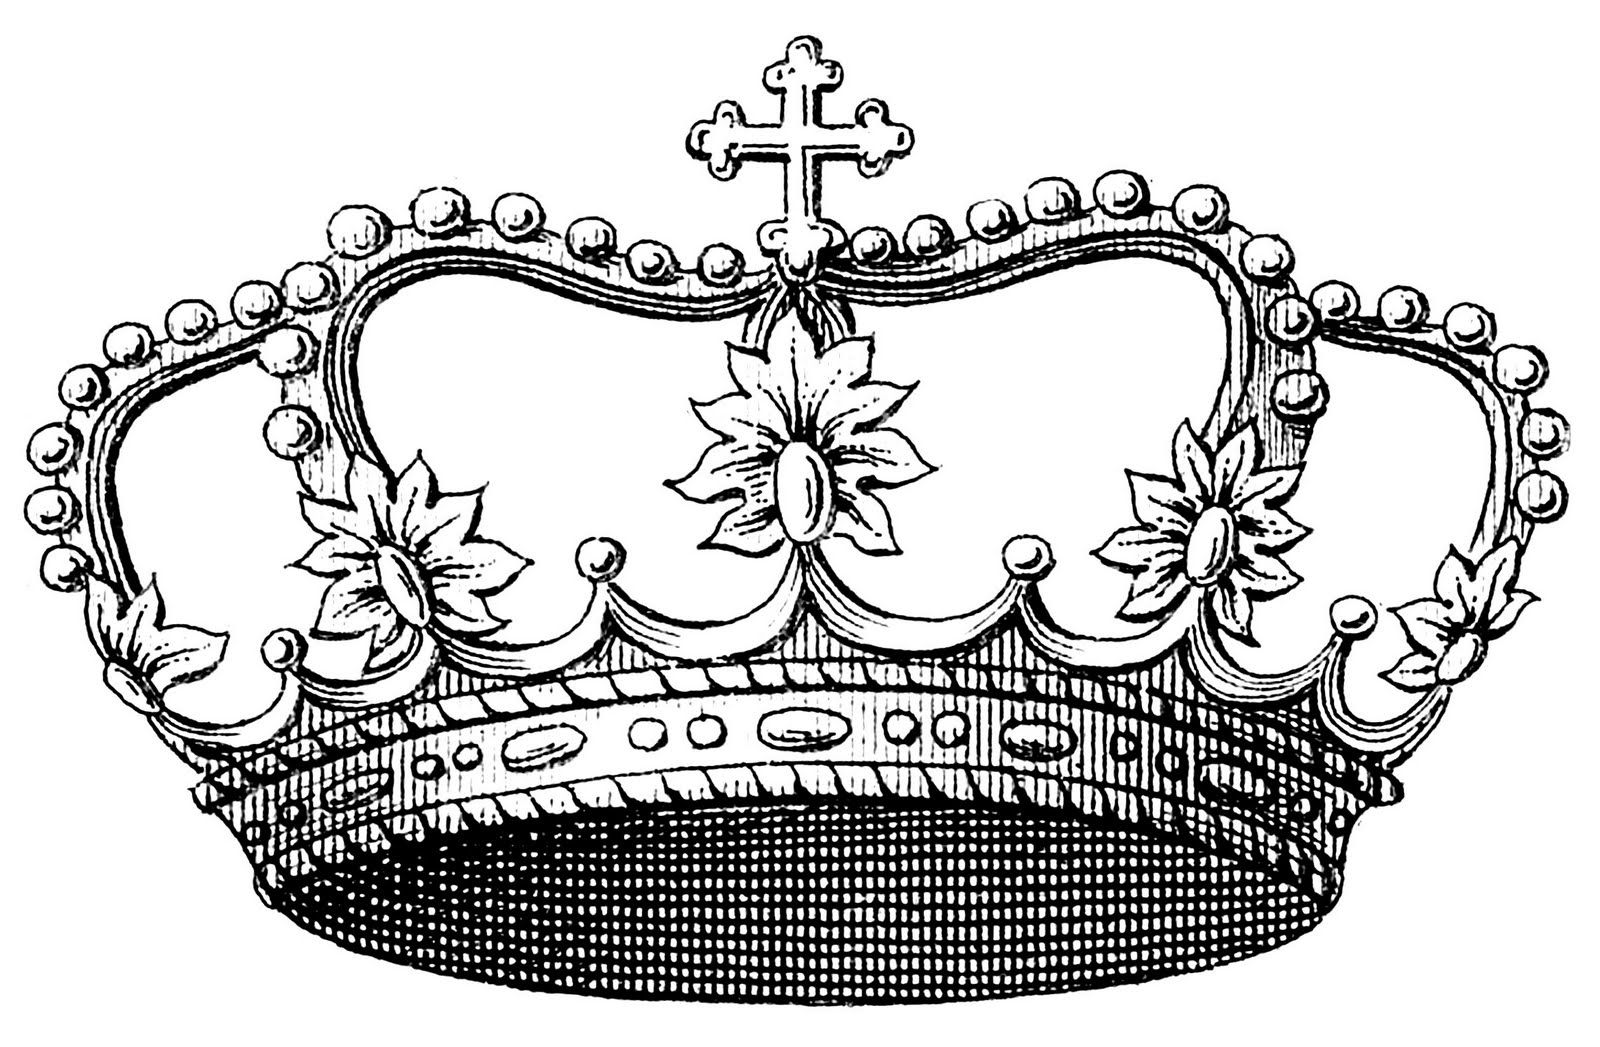 Vintage Clip Art Image - Delicate Princess Crown | Graphics fairy ...